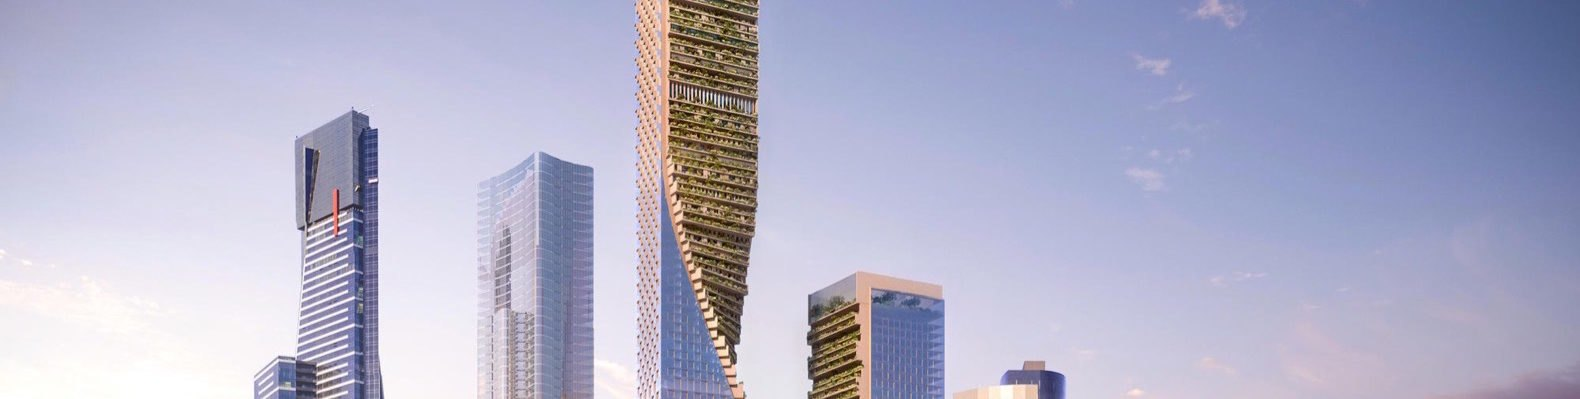 rendering of skyscrapers with green walls